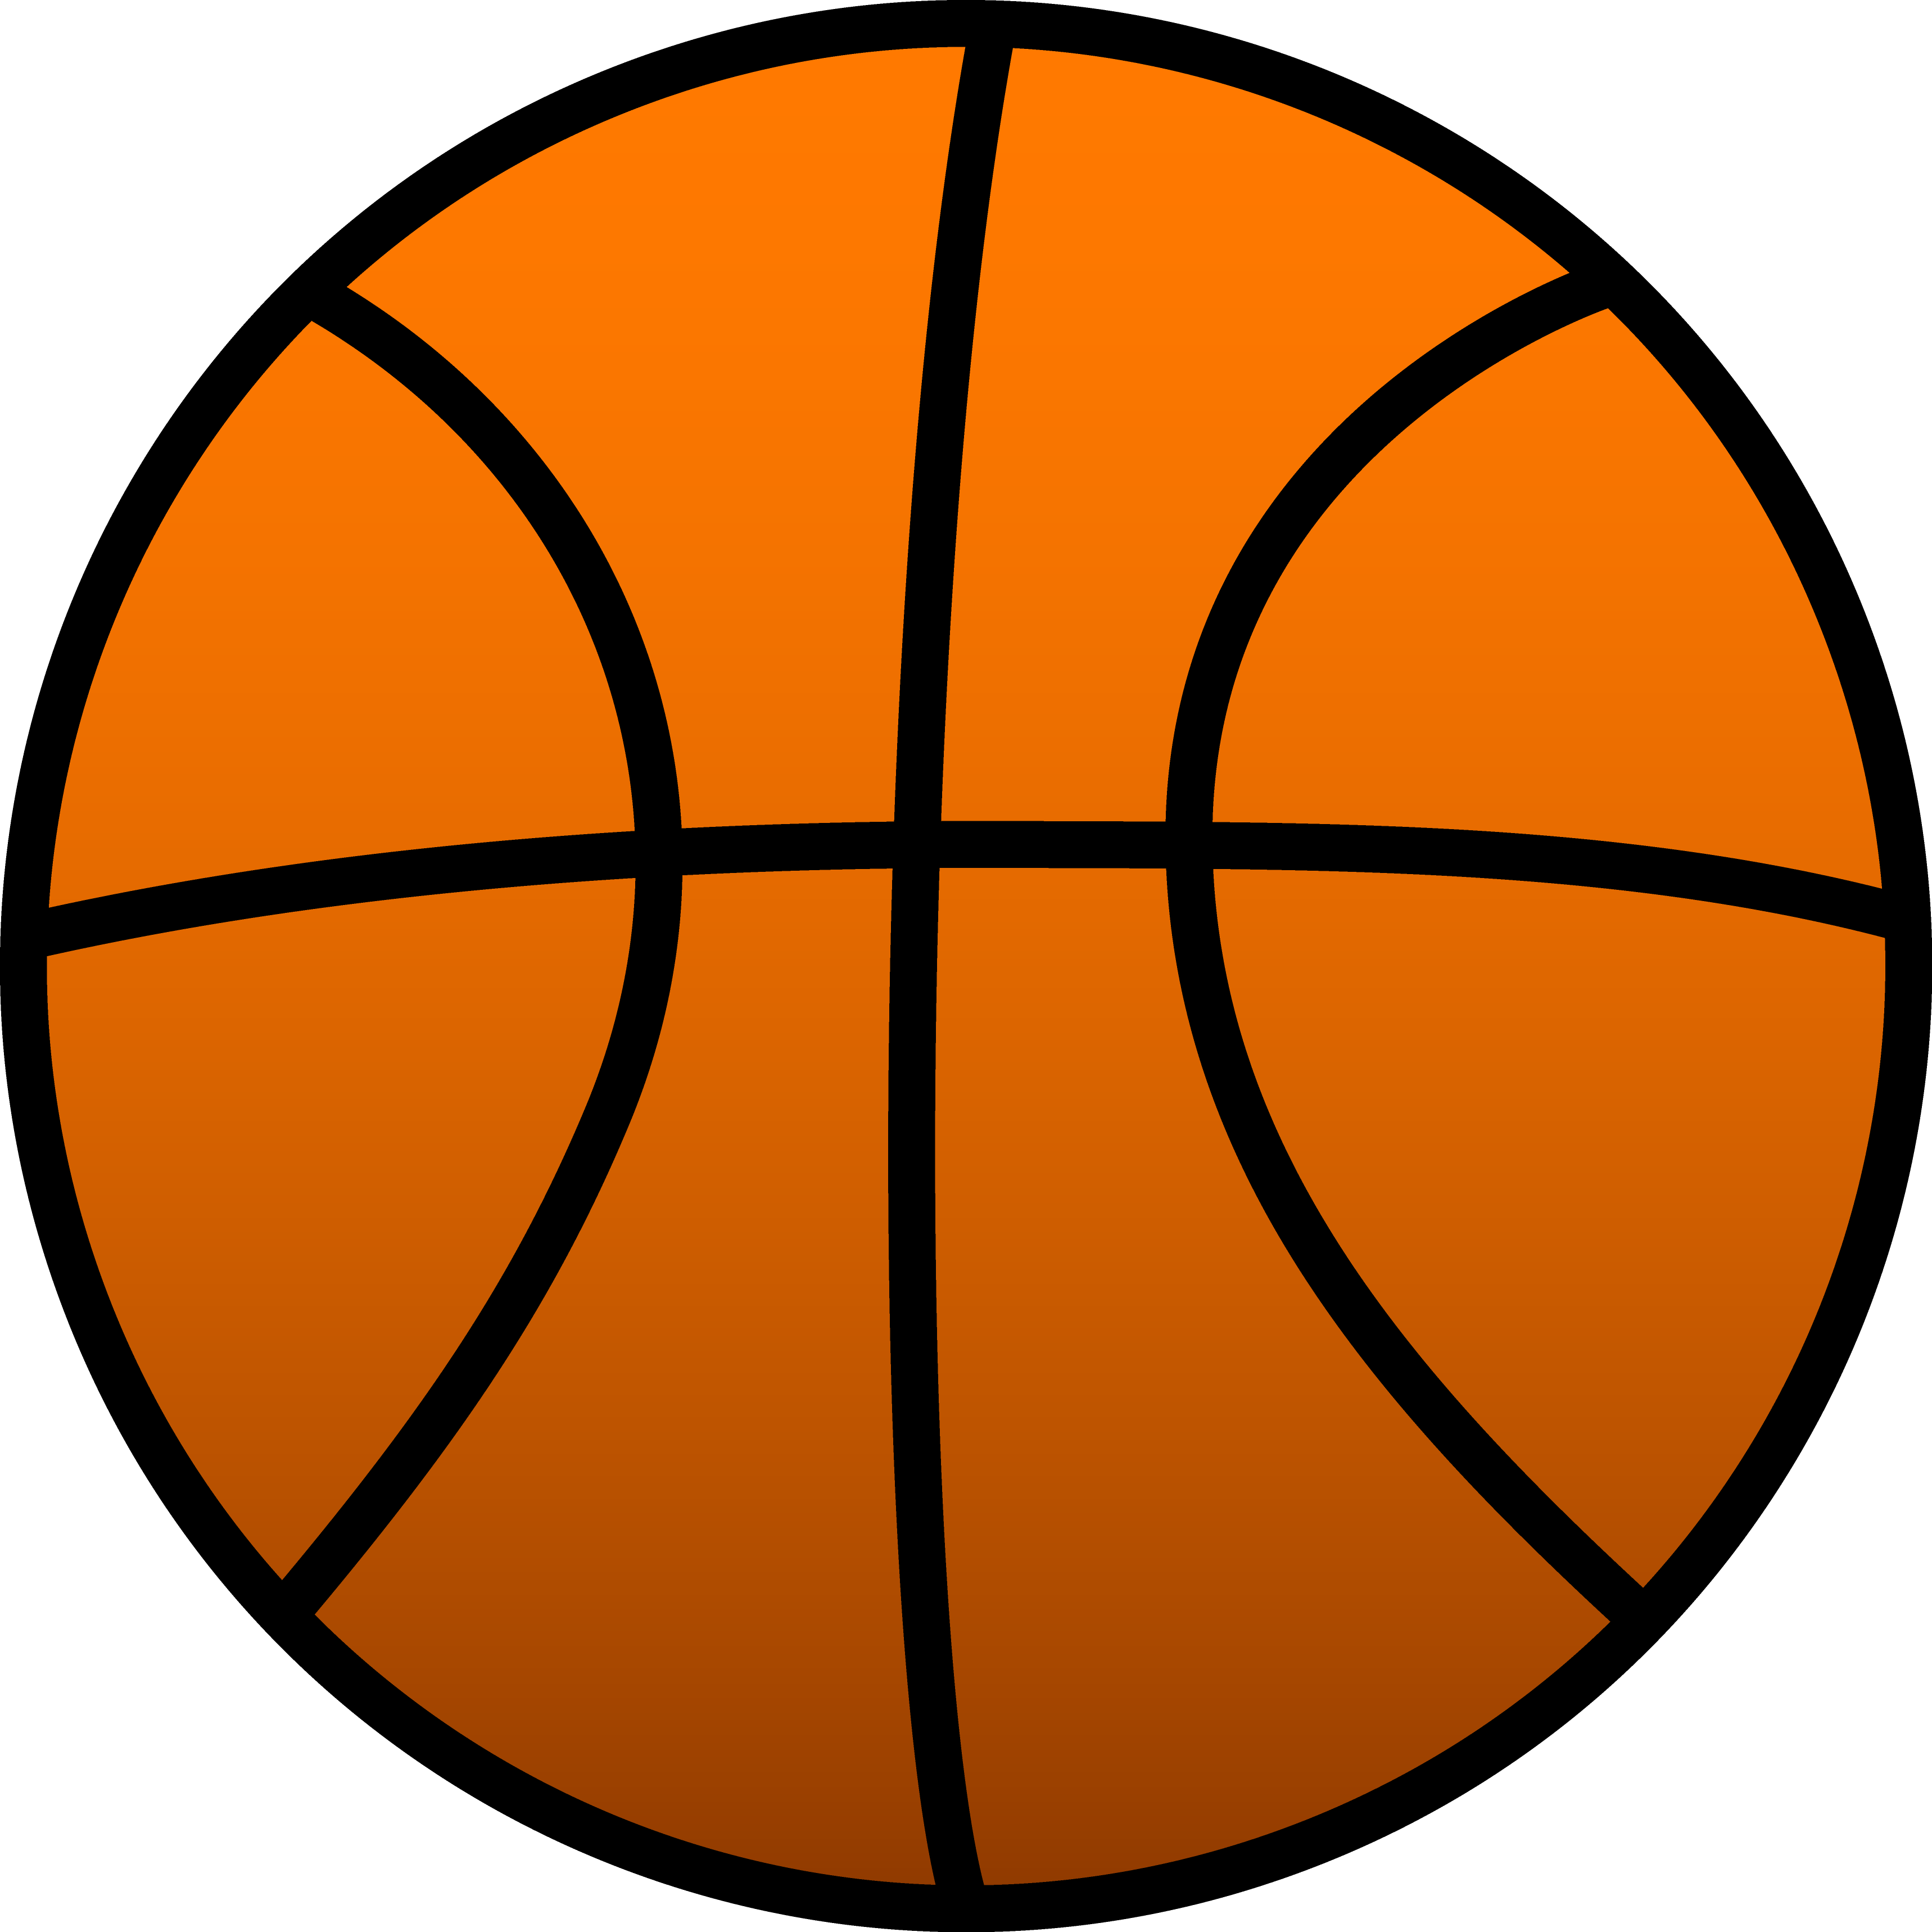 Free Download Basketball Png Images